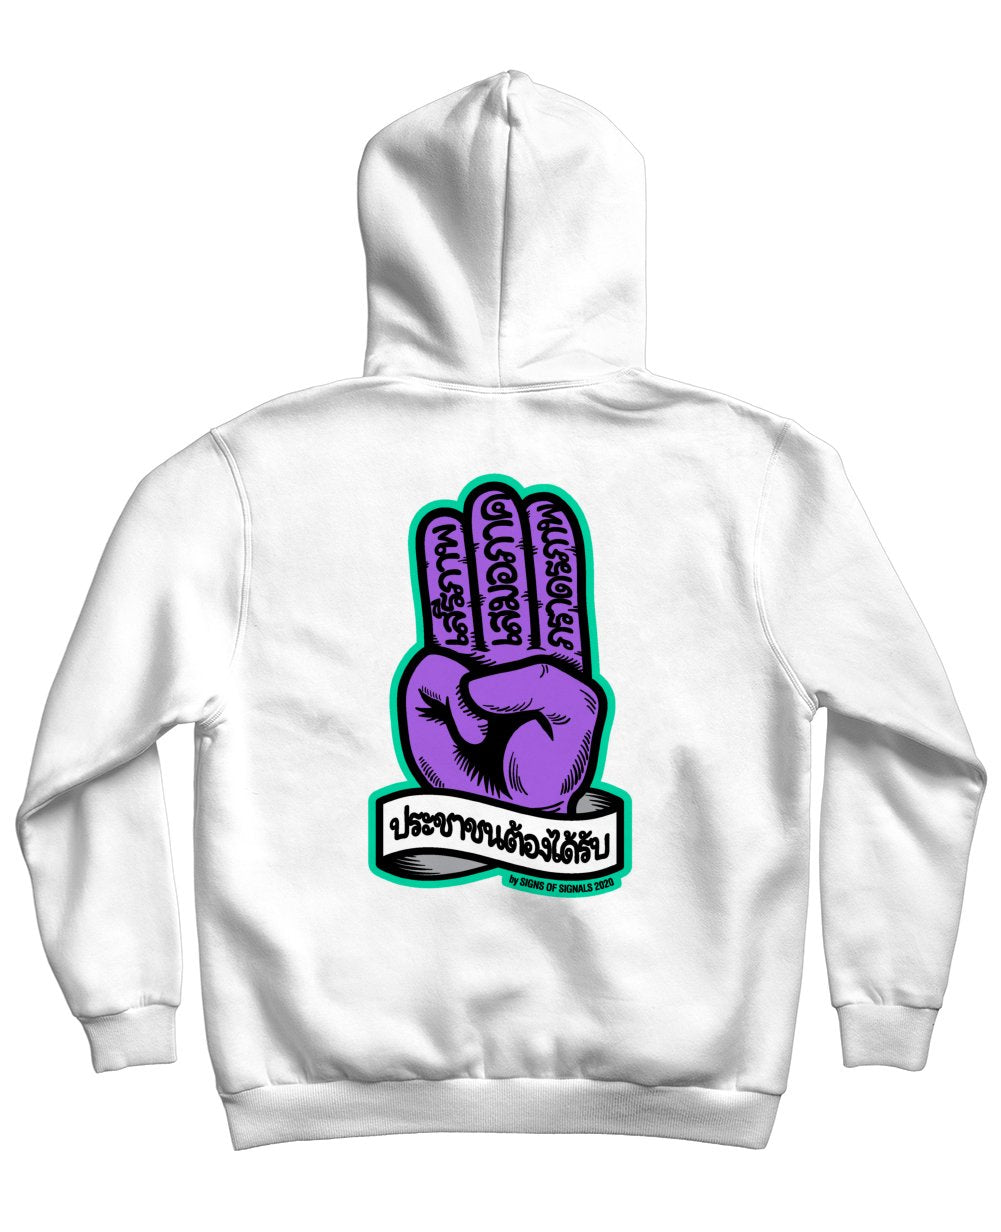 Three Finger Salute Print Hoodies in White